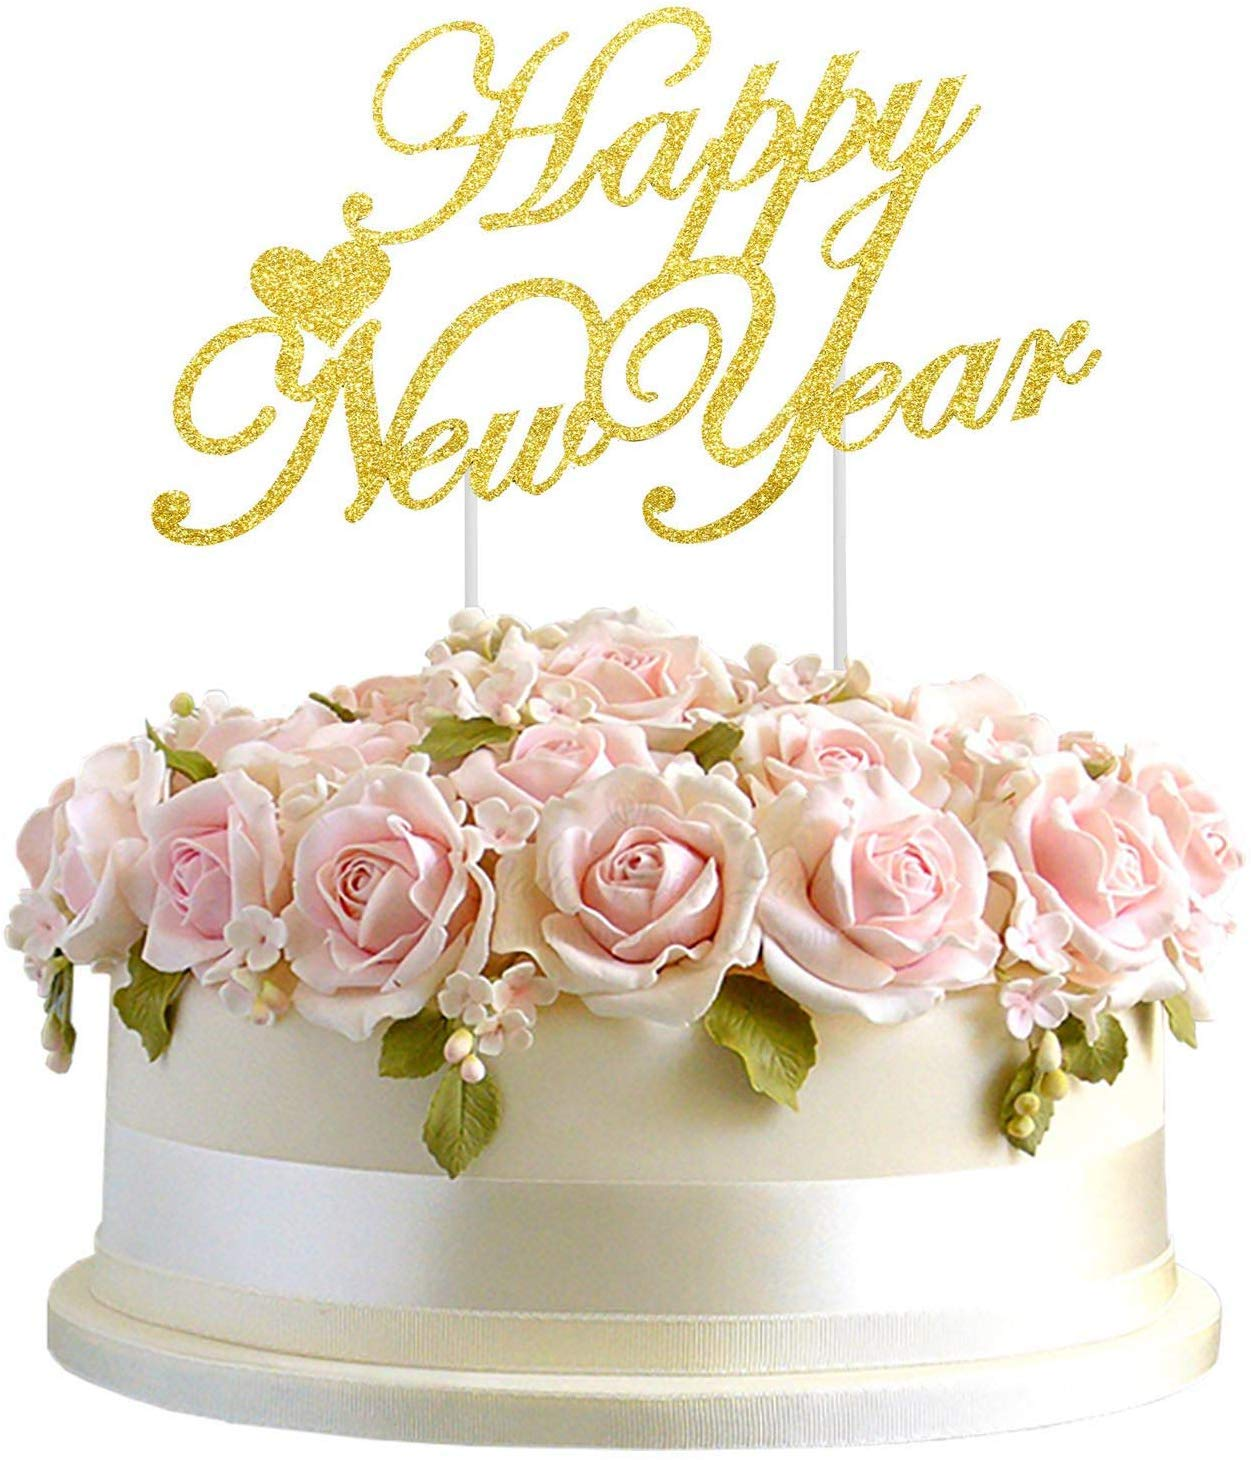 Holiday or Christmas Party Decorations Supplies 2021 New Year Party Decoration Rose Gold Merry Christmas Cake Toppers